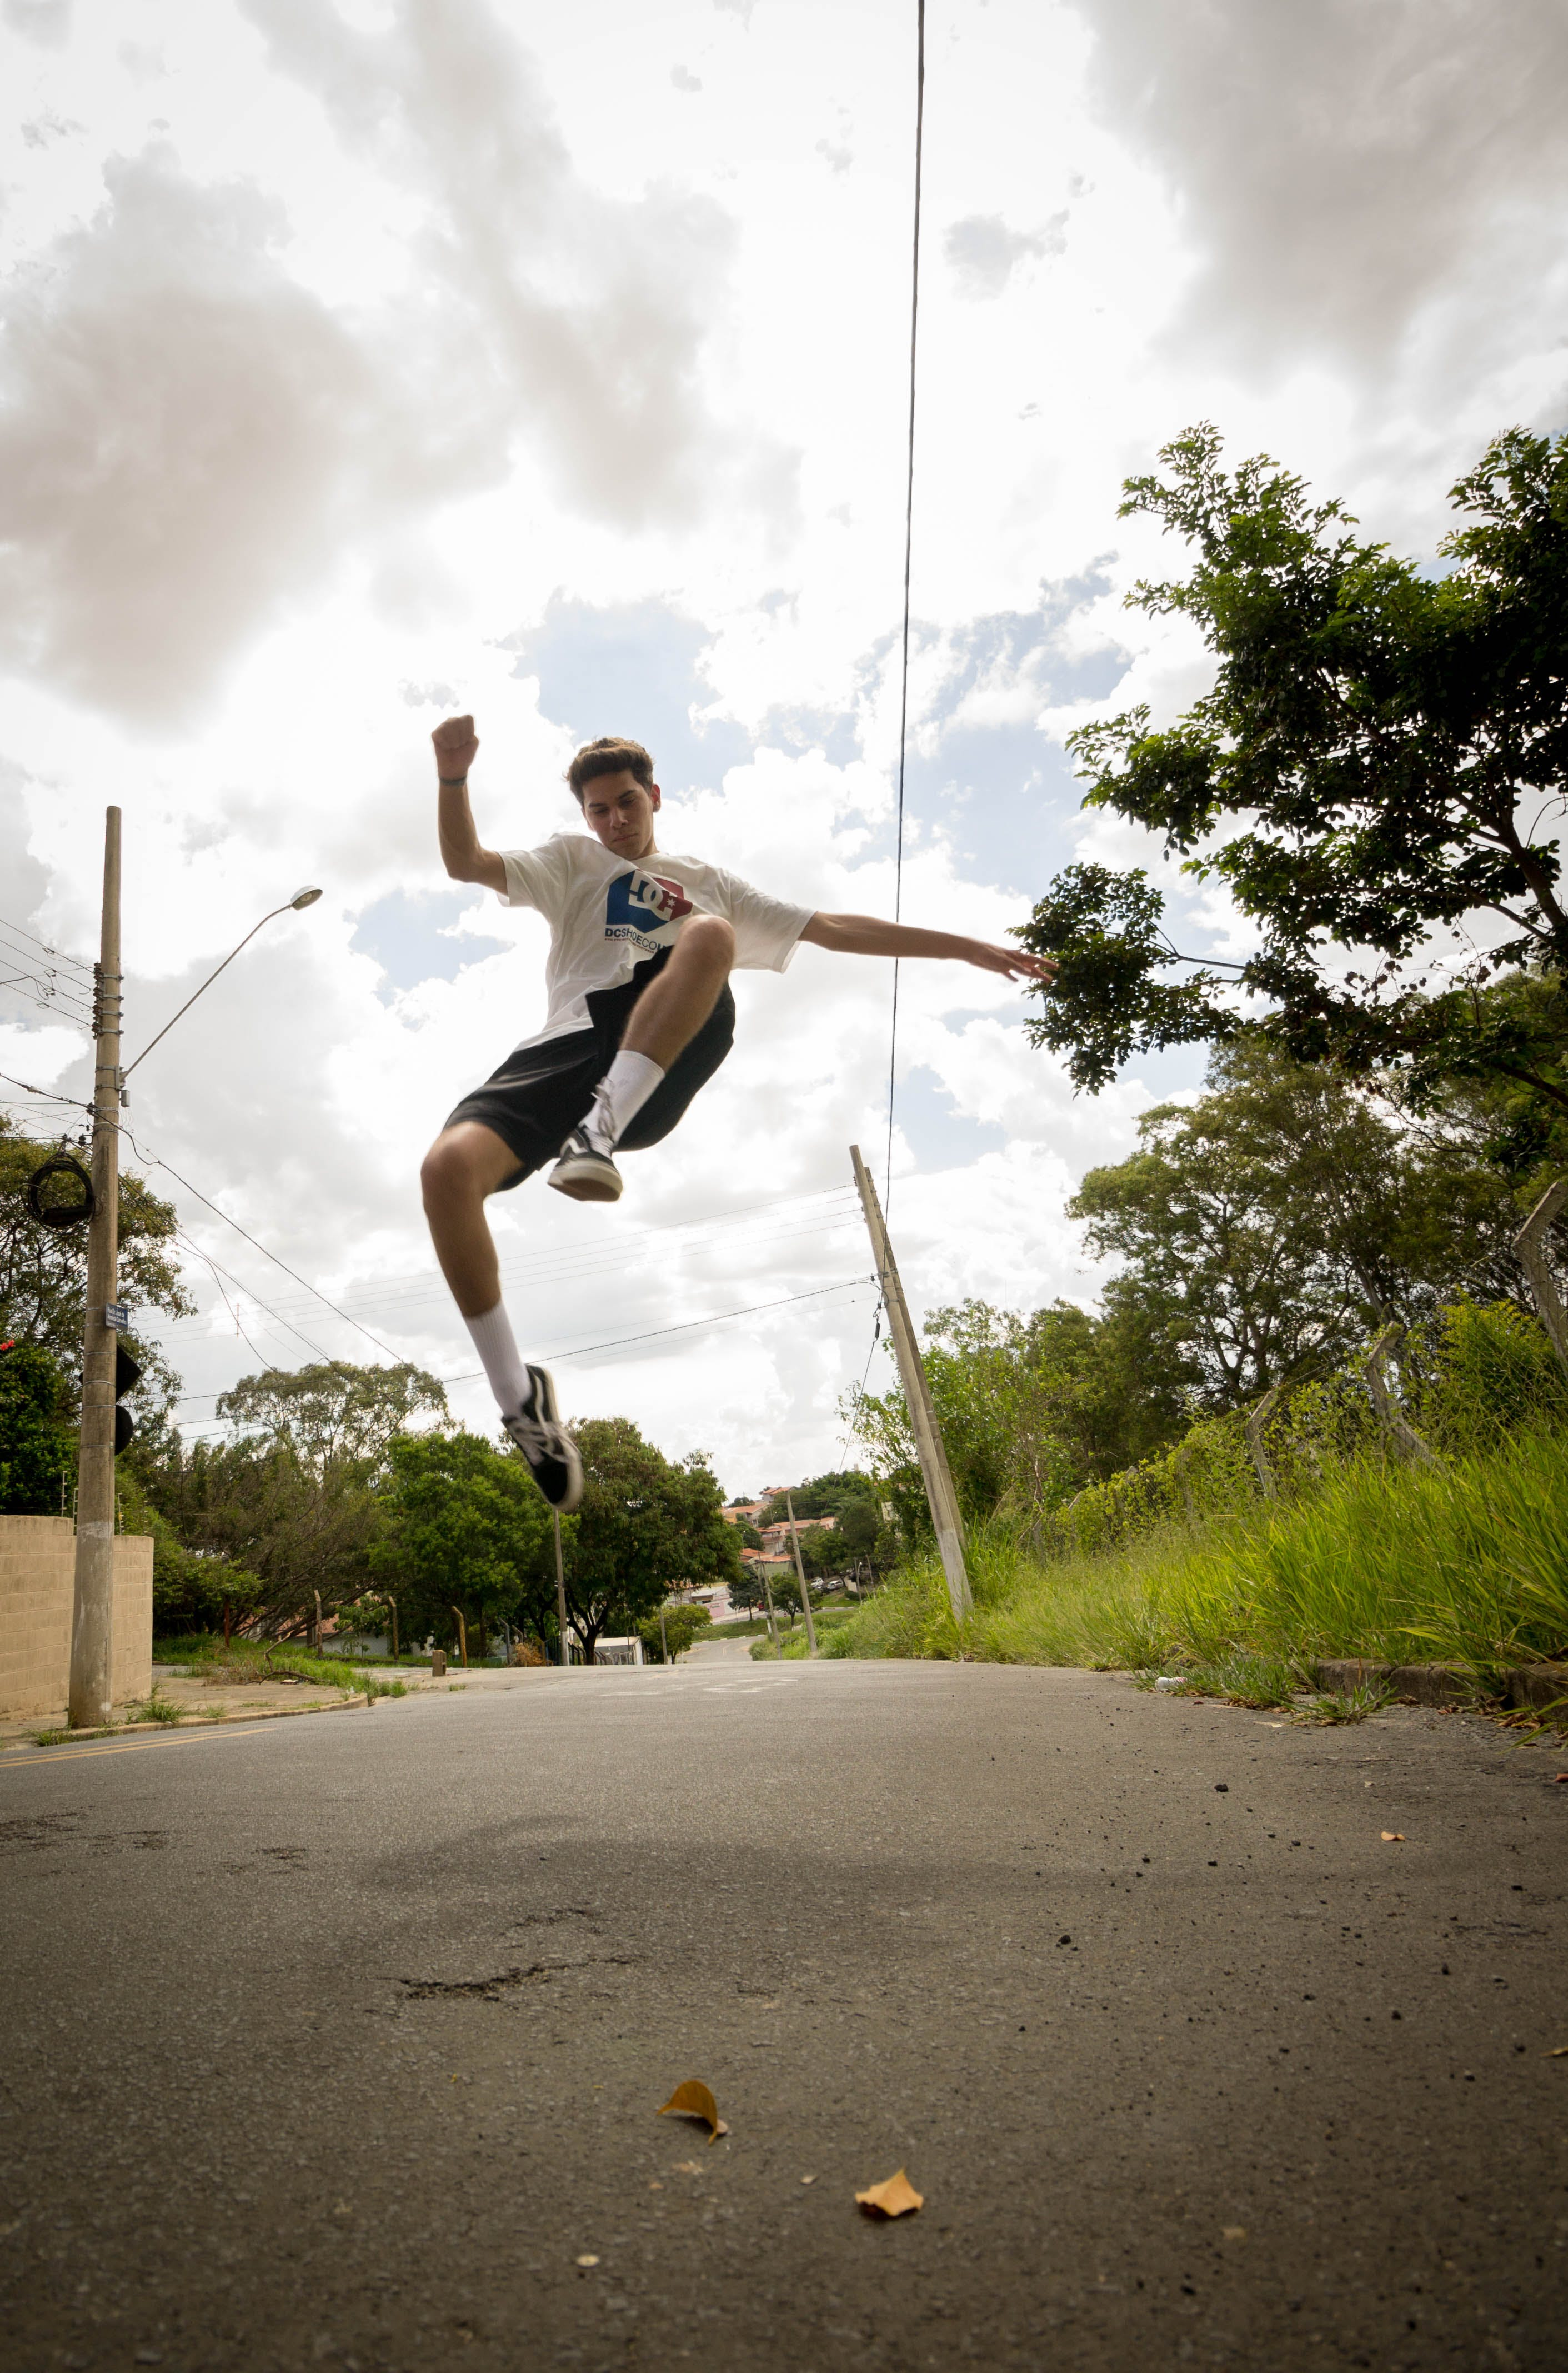 Photo of Man Jumping on the Street